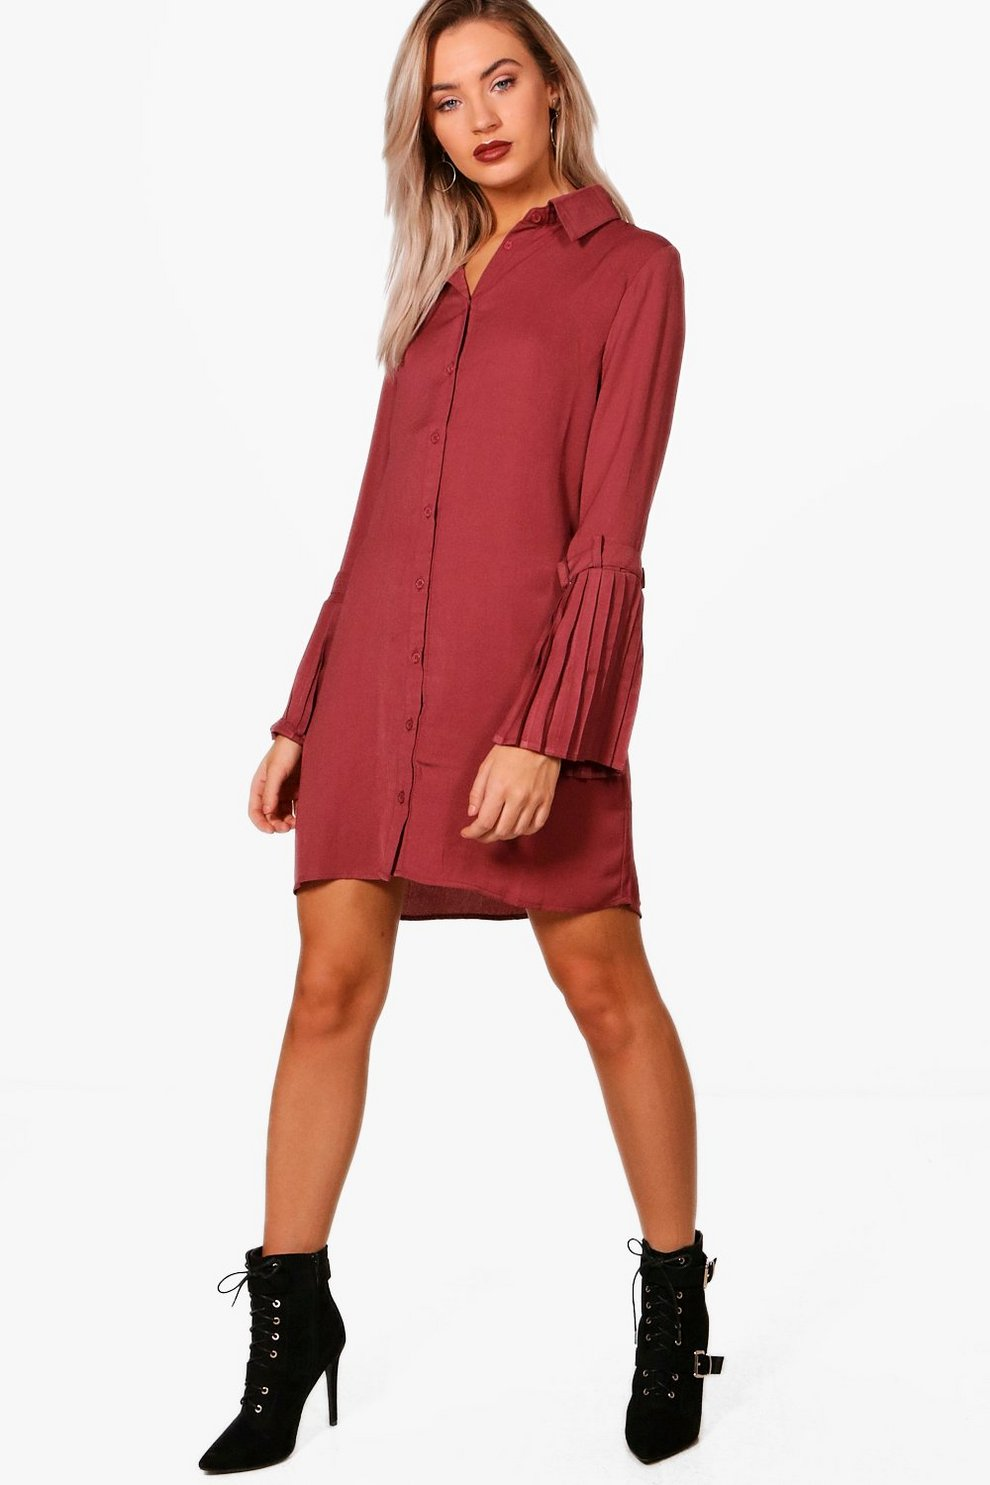 Boohoo Utility Pleated Sleeve Shirt Dress Discount 100% Original Discount New Arrival Buy Cheap Get Authentic RITFrqrS